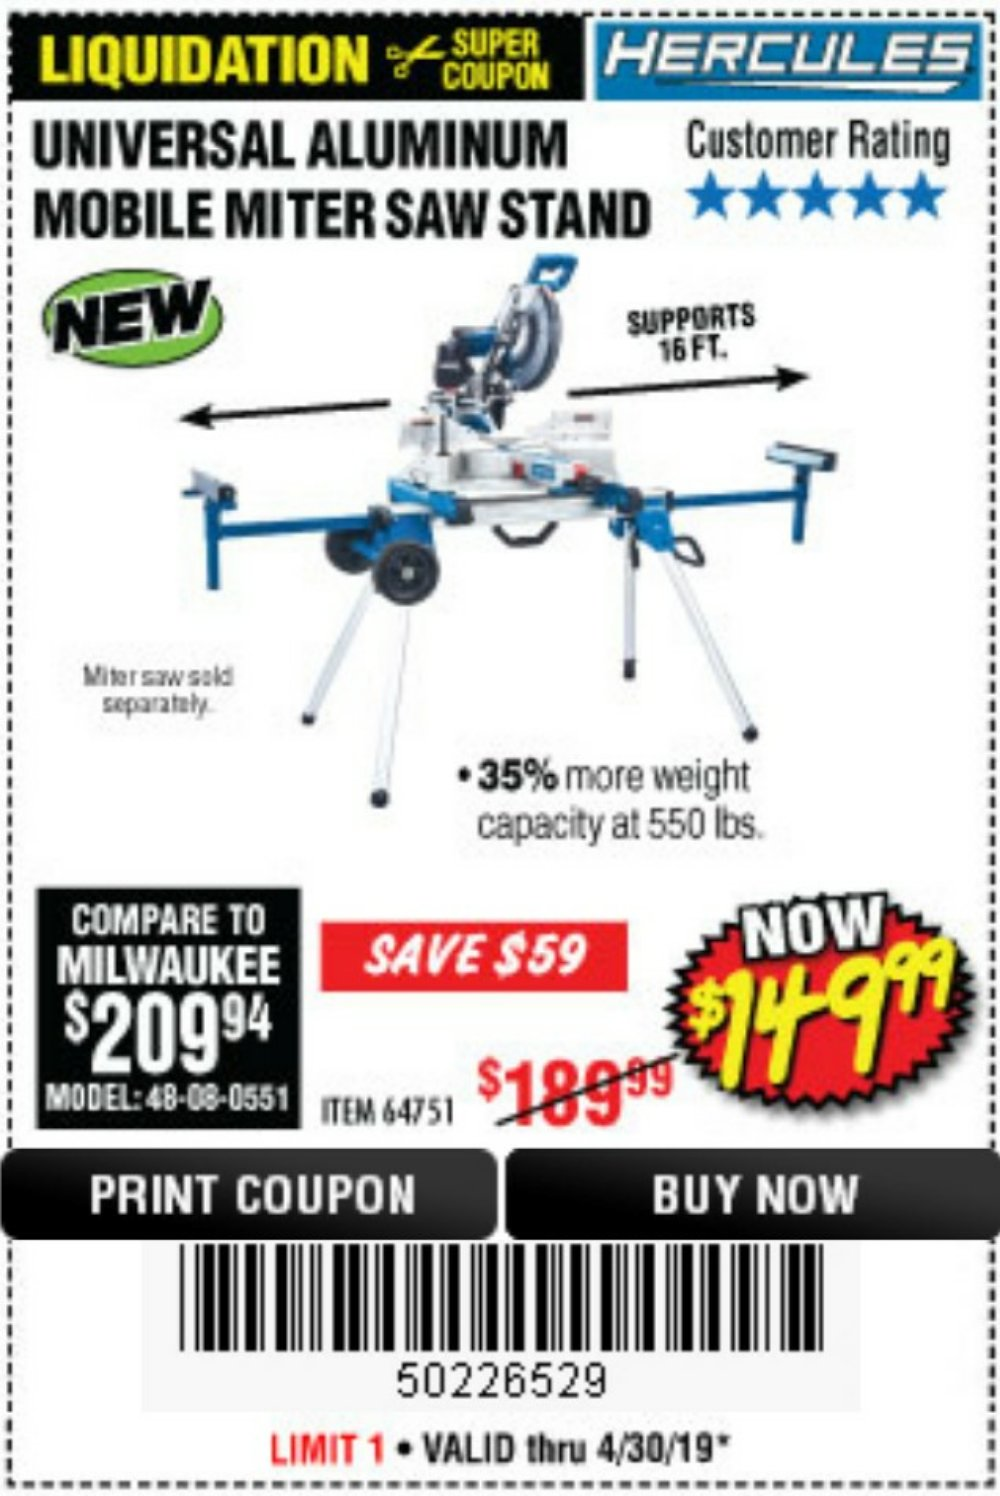 Harbor Freight Coupon, HF Coupons - Hercules Heavy Duty Mobile Miter Saw Stand